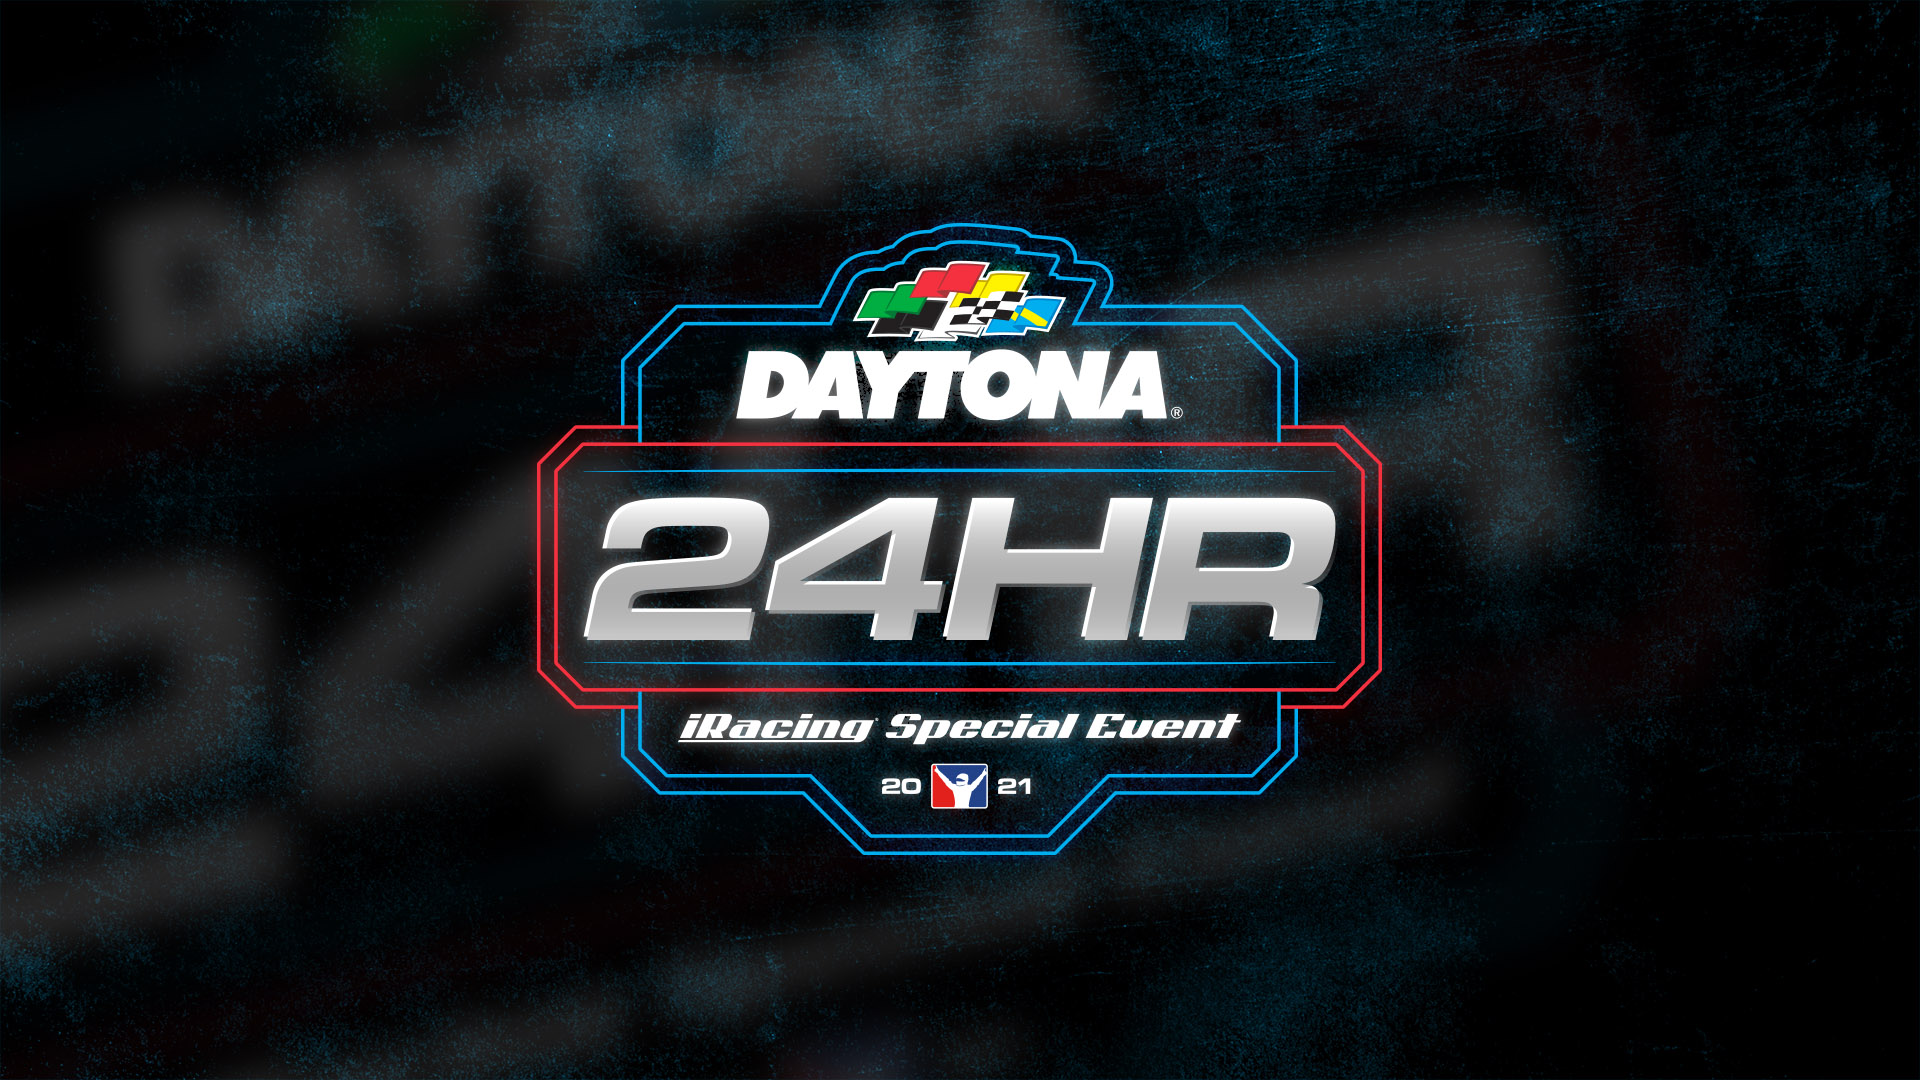 iRacing 2021 Daytona 24 Hours postponed cancelled?